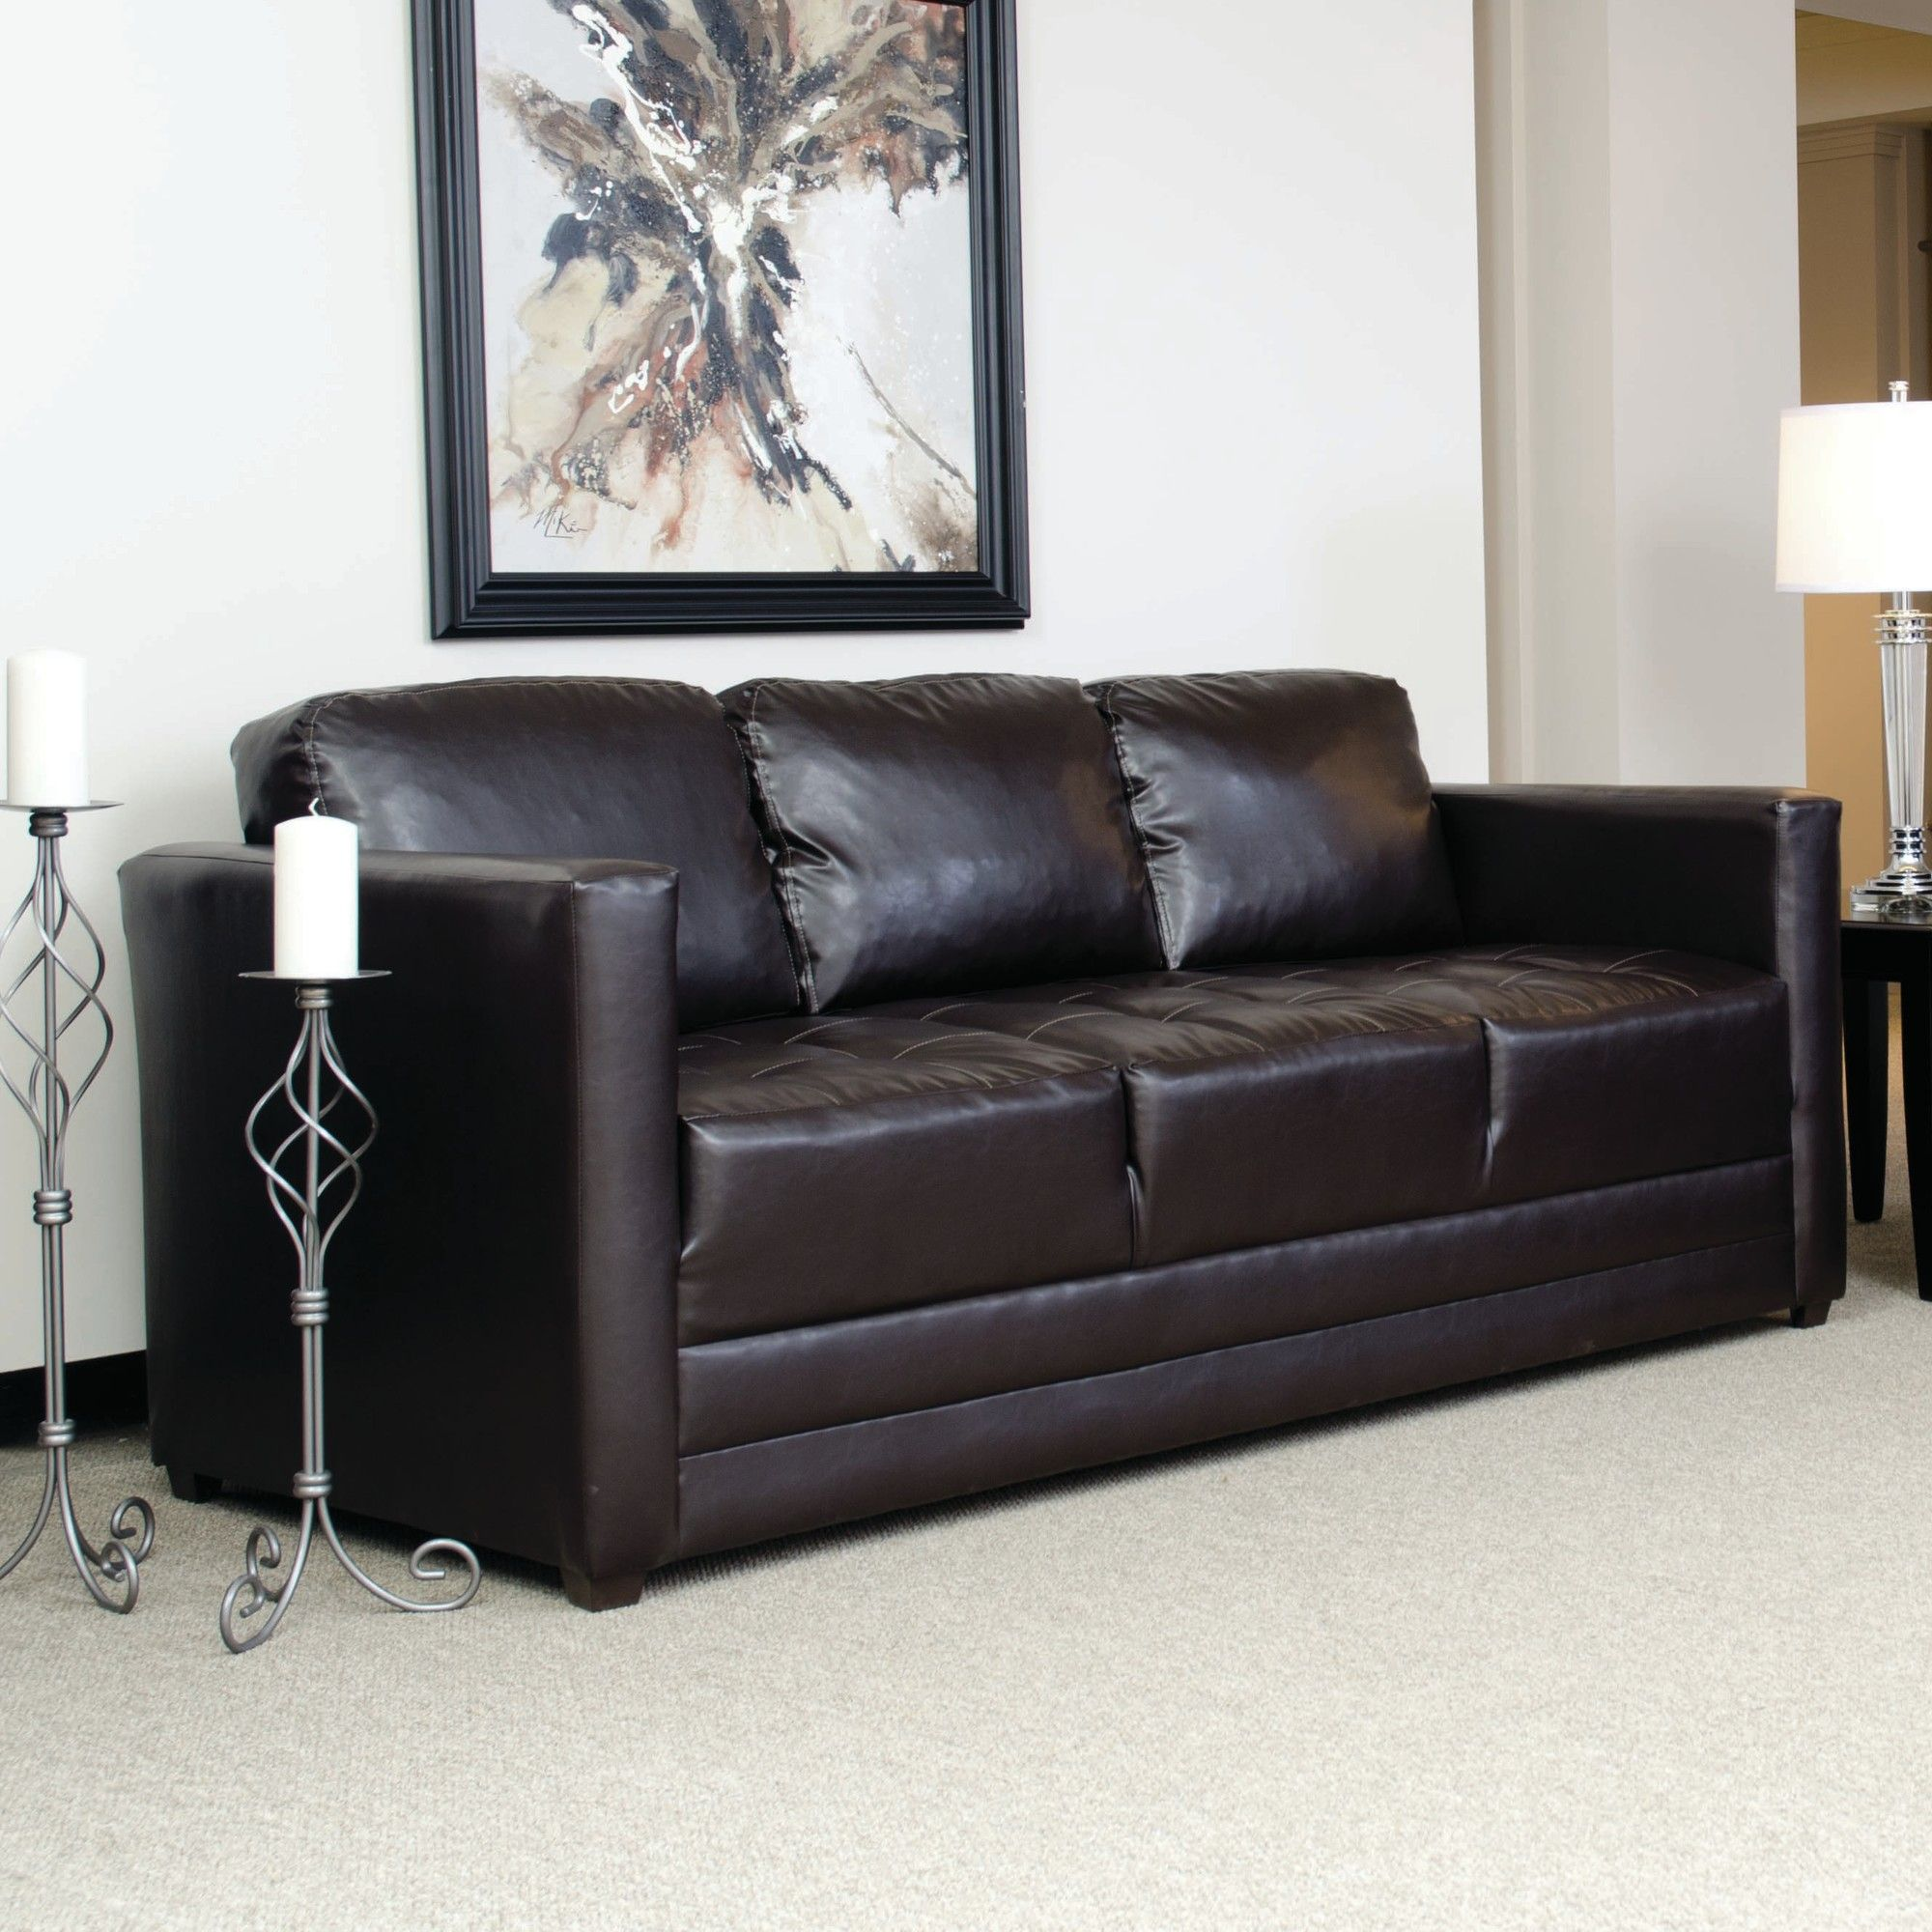 Serta Upholstery Harry Leather Sofa & Reviews